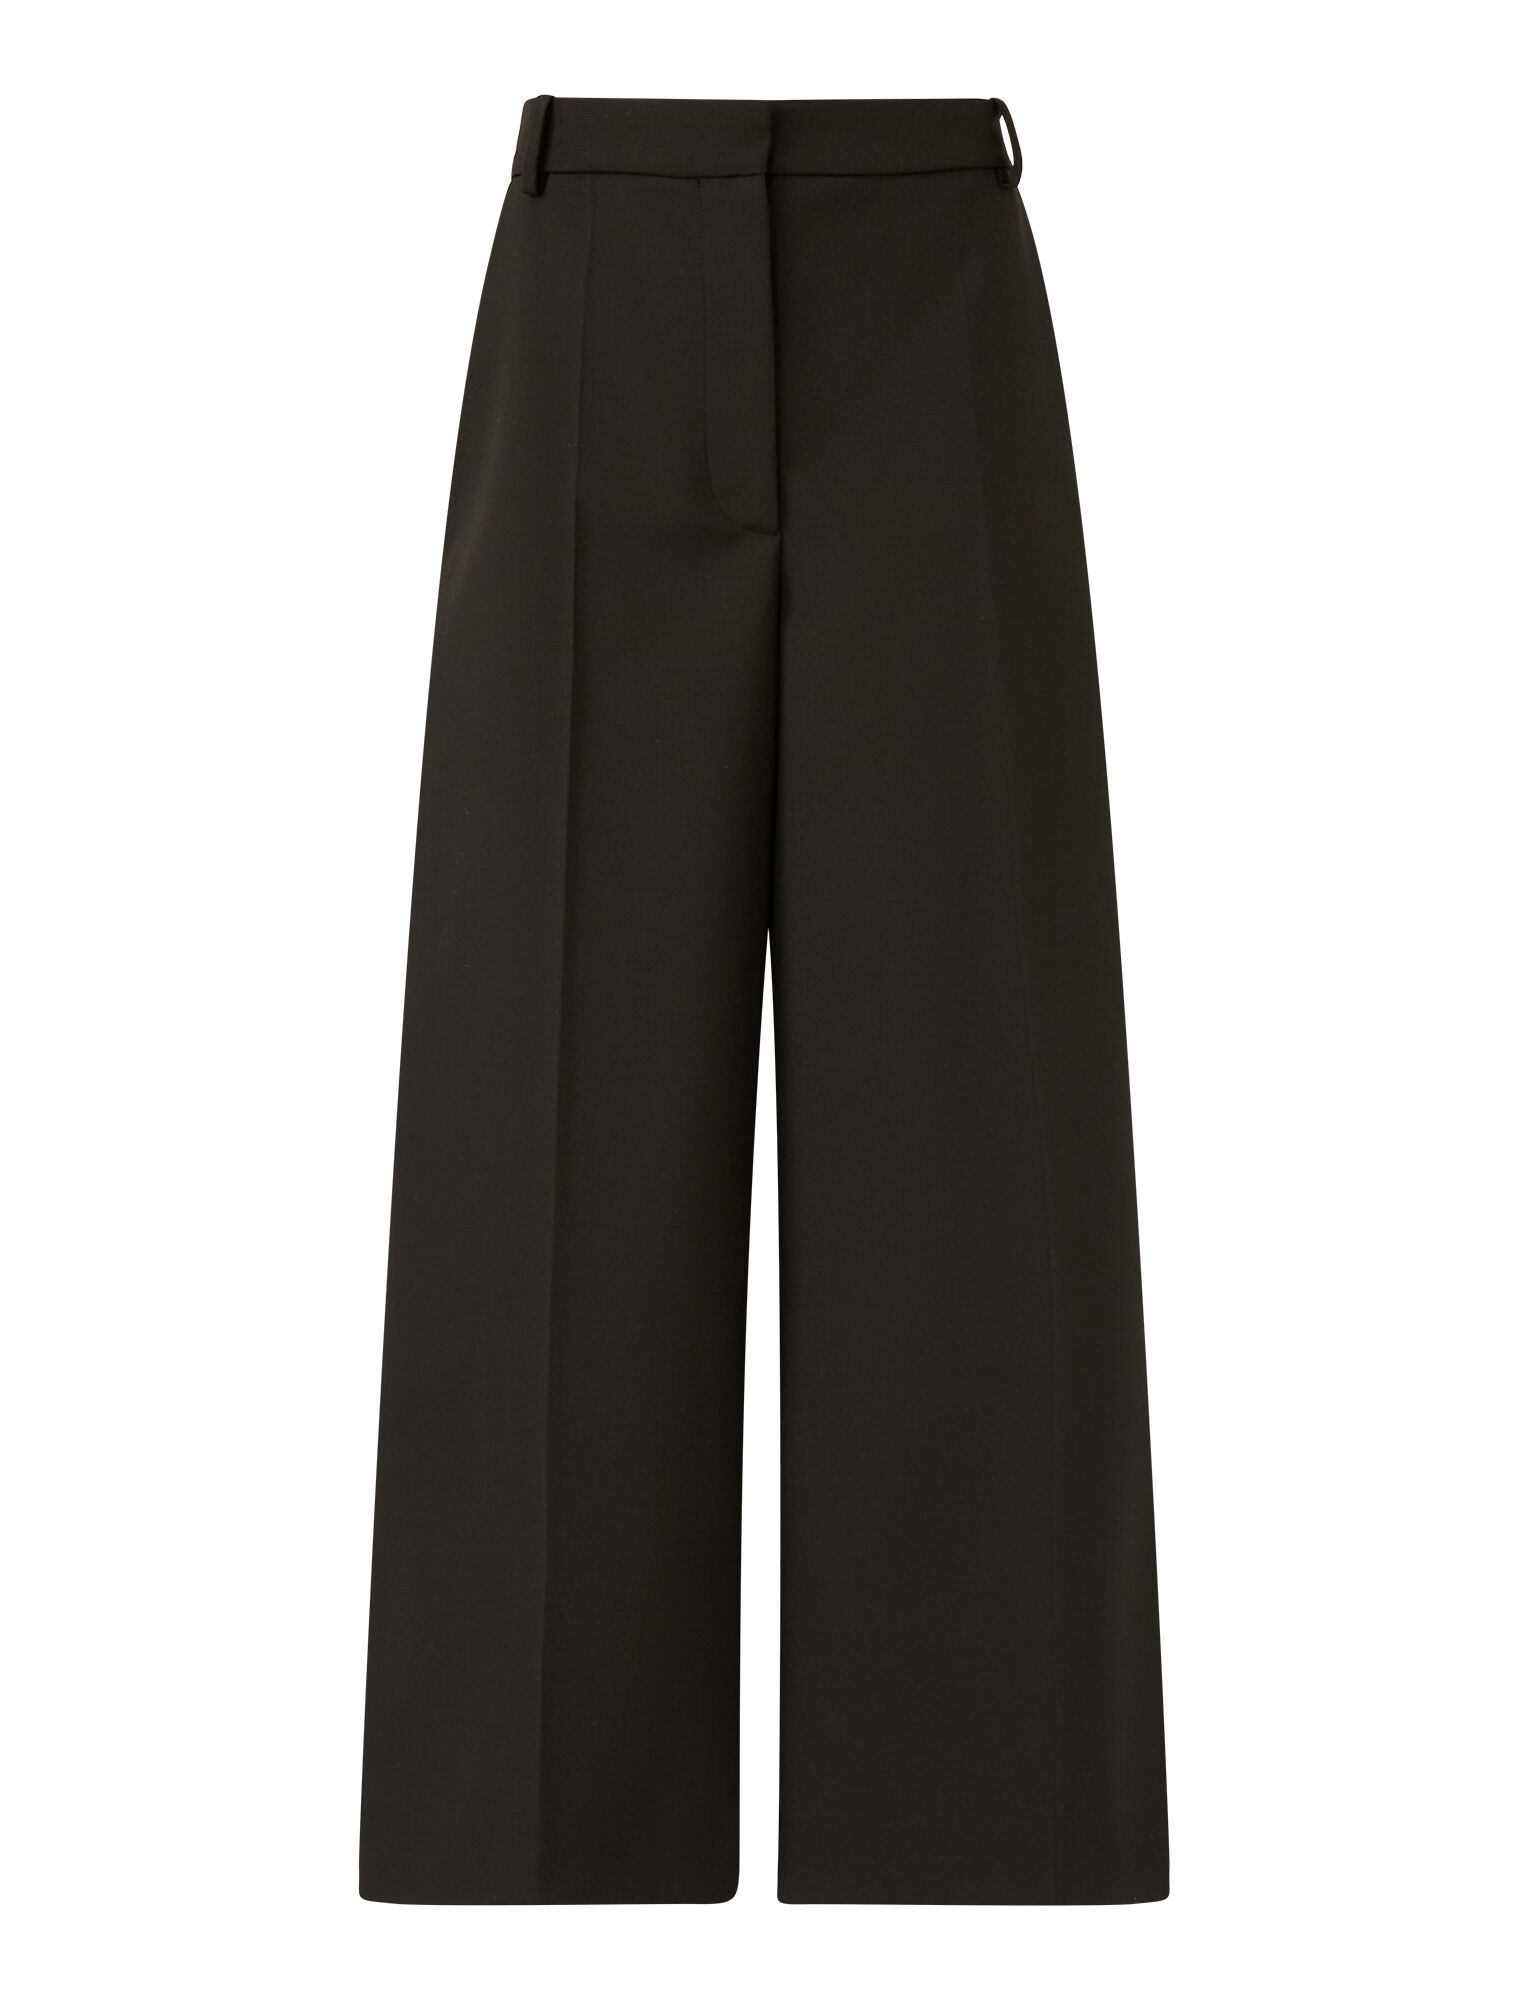 Joseph, Travis Wool Granite Trousers, in Black